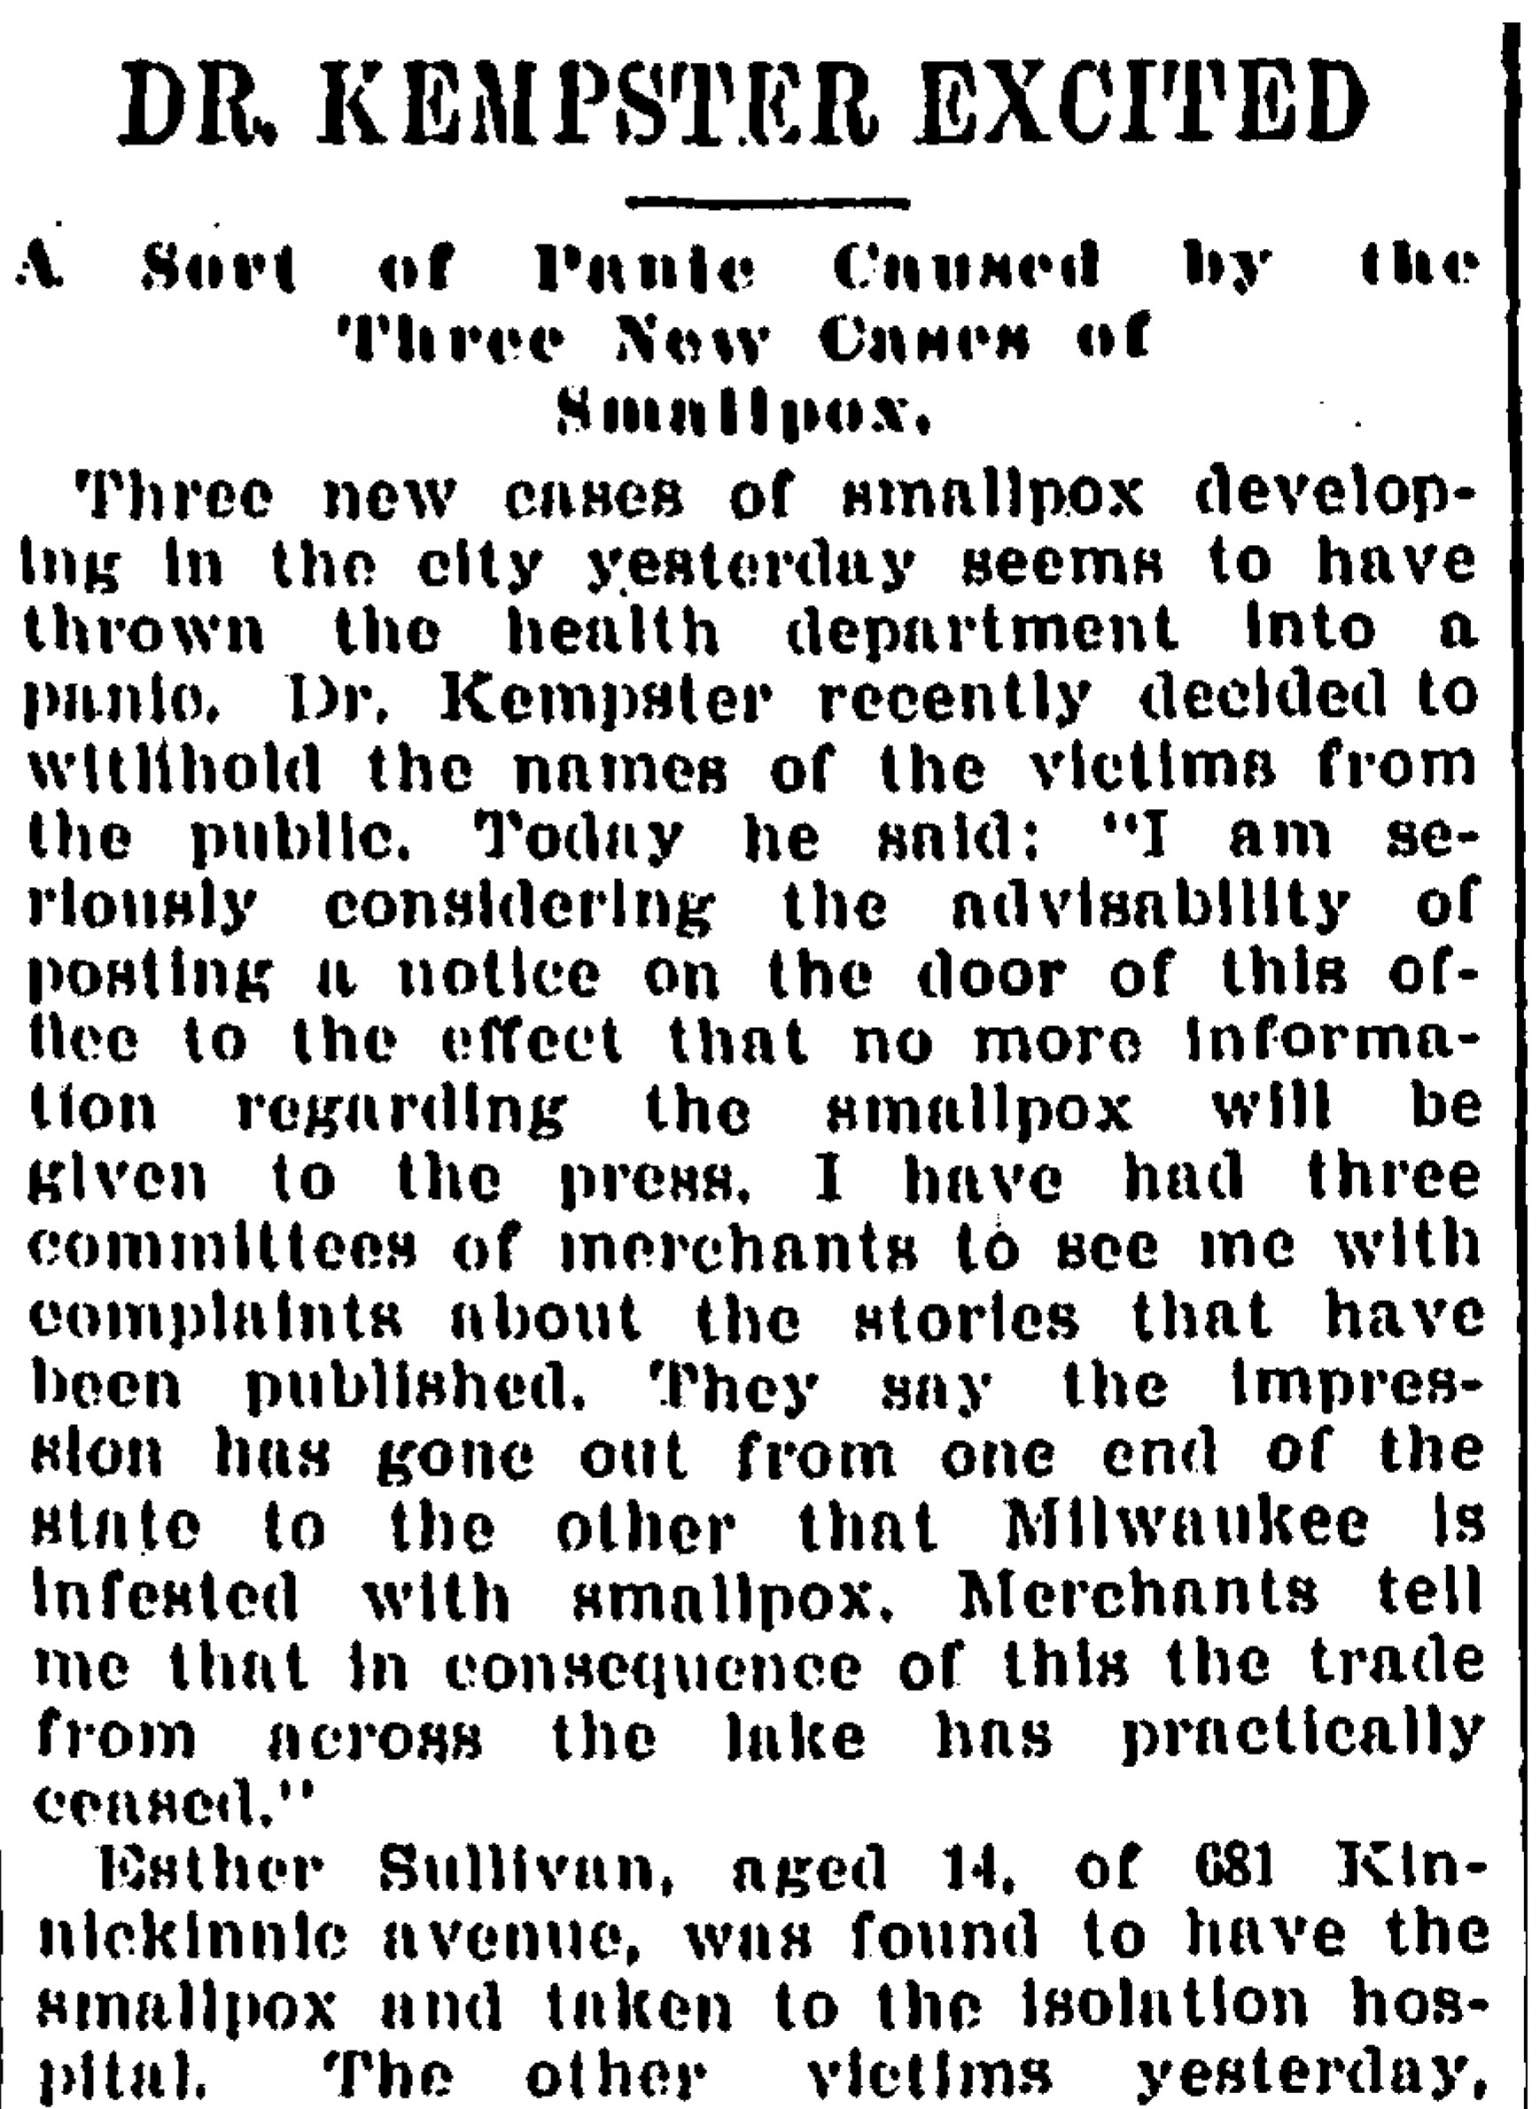 An article in the July 18, 1894 edition of the Milwaukee Journal reports on the spreading smallpox outbreak in the city. Milwaukee Journal/NewsBank. (Public Domain)